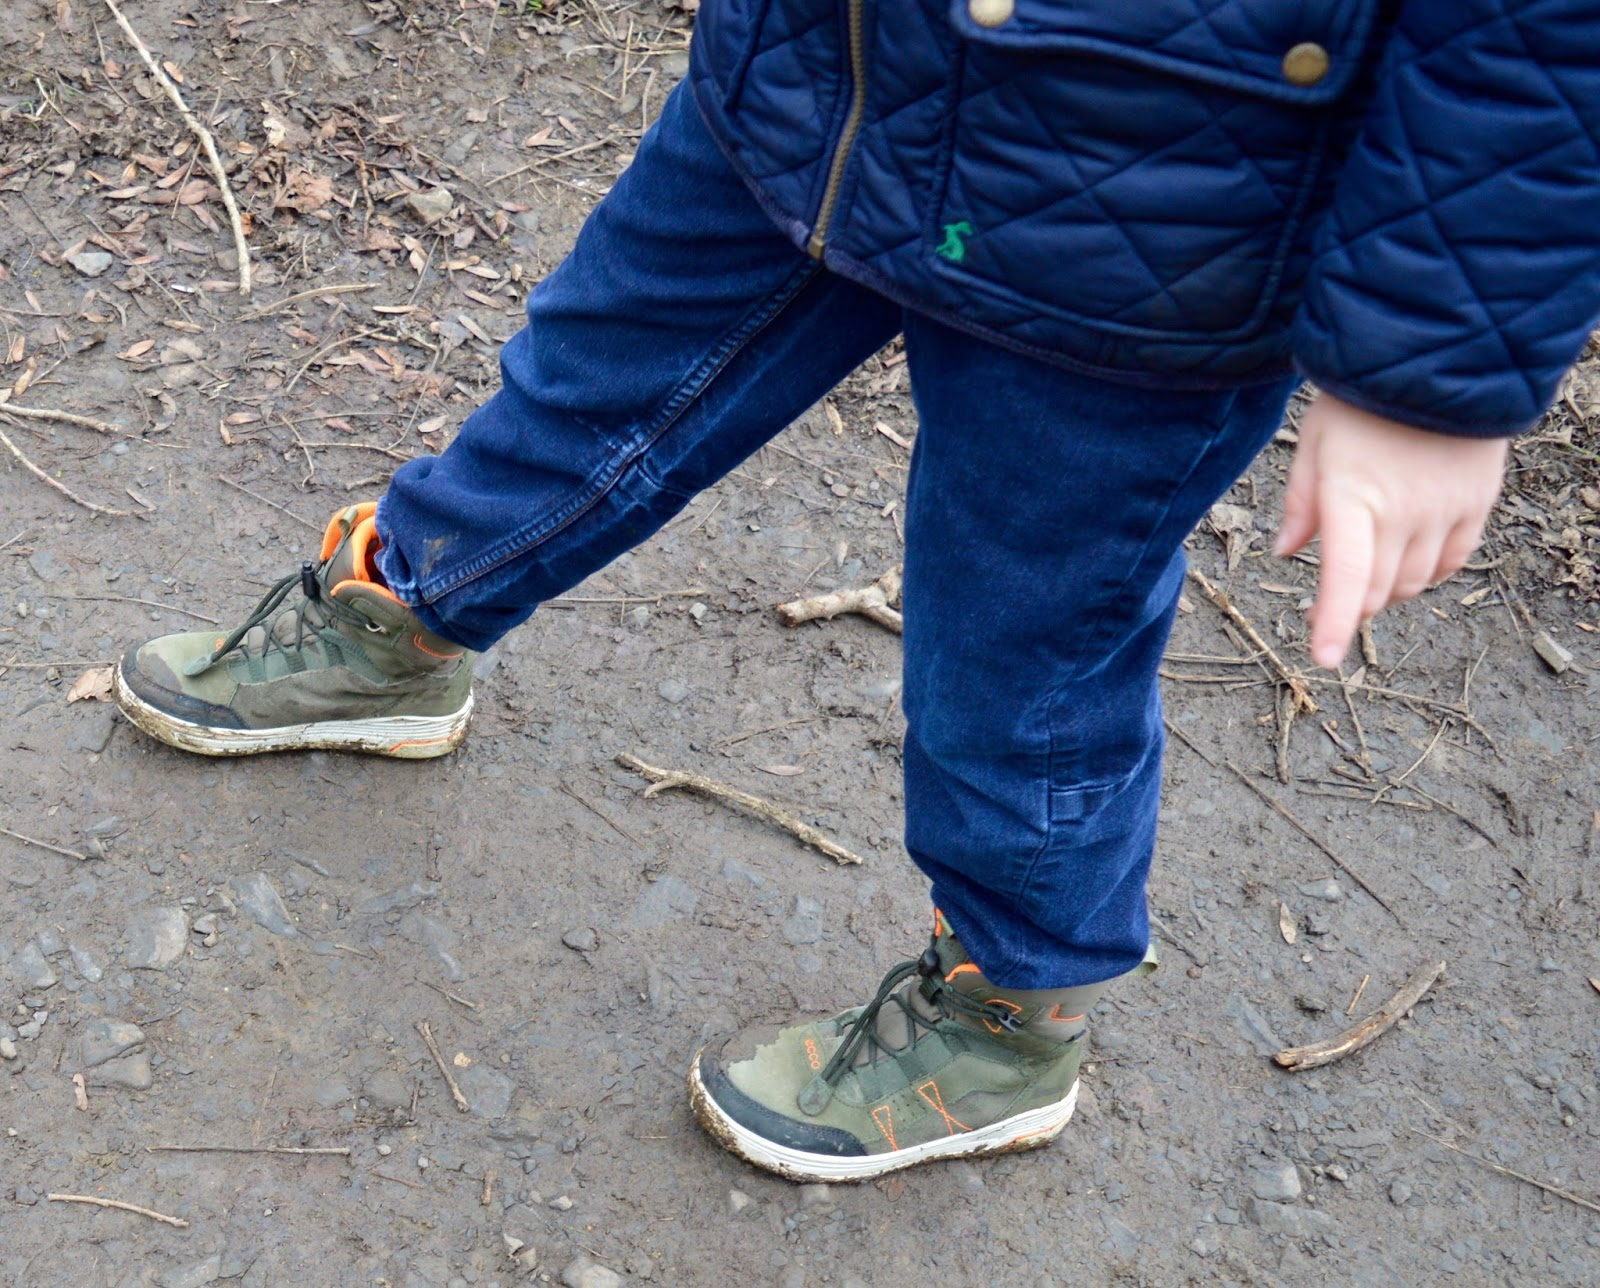 Our Visit to Plessey Woods - A FREE day out in Northumberland. It was very muddy and the perfect chance for Harry to put his GORE-TEX shoes through their paces - GORE-TEX shoes in mud